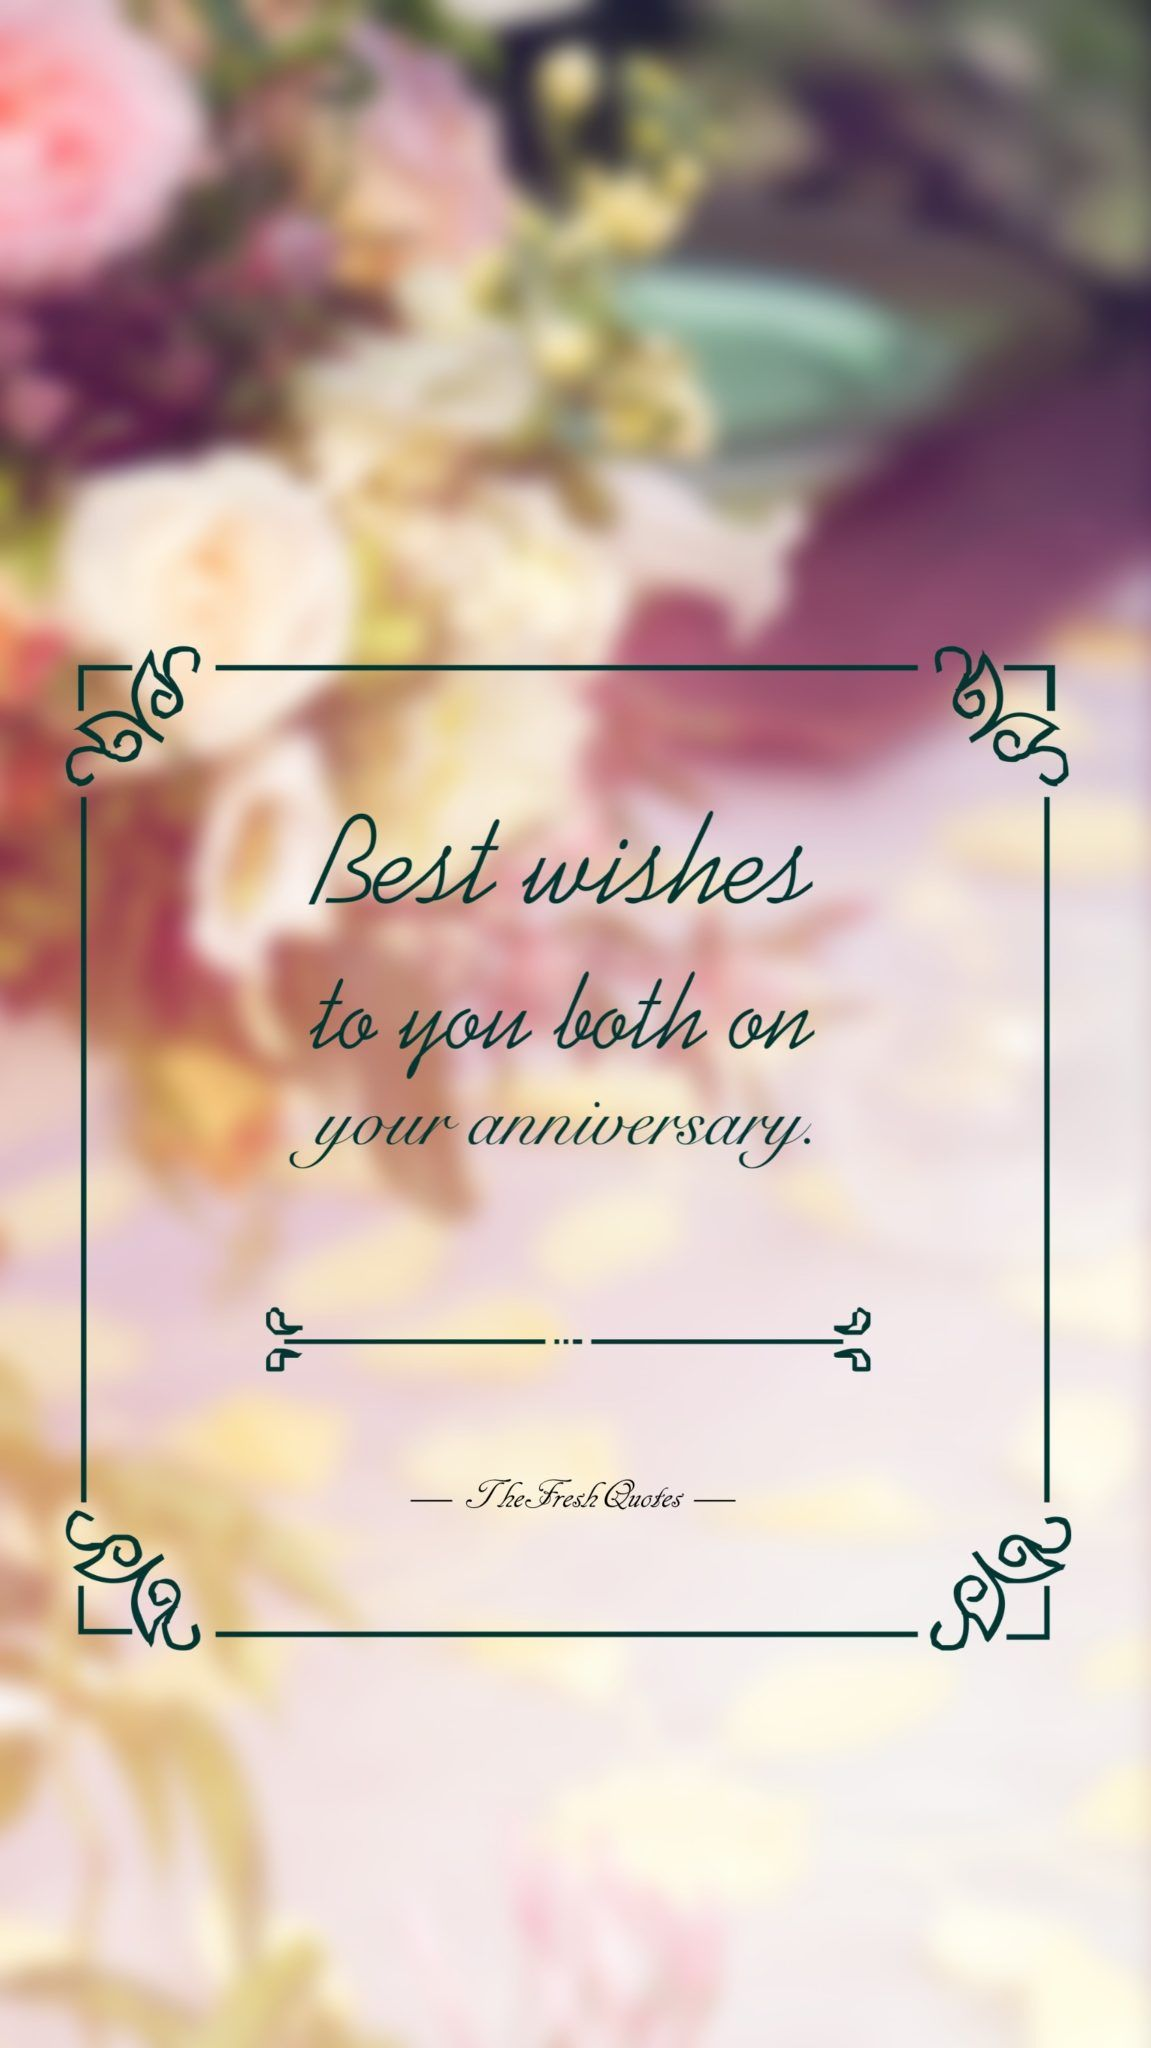 Following are the funny and romantic anniversary wishes